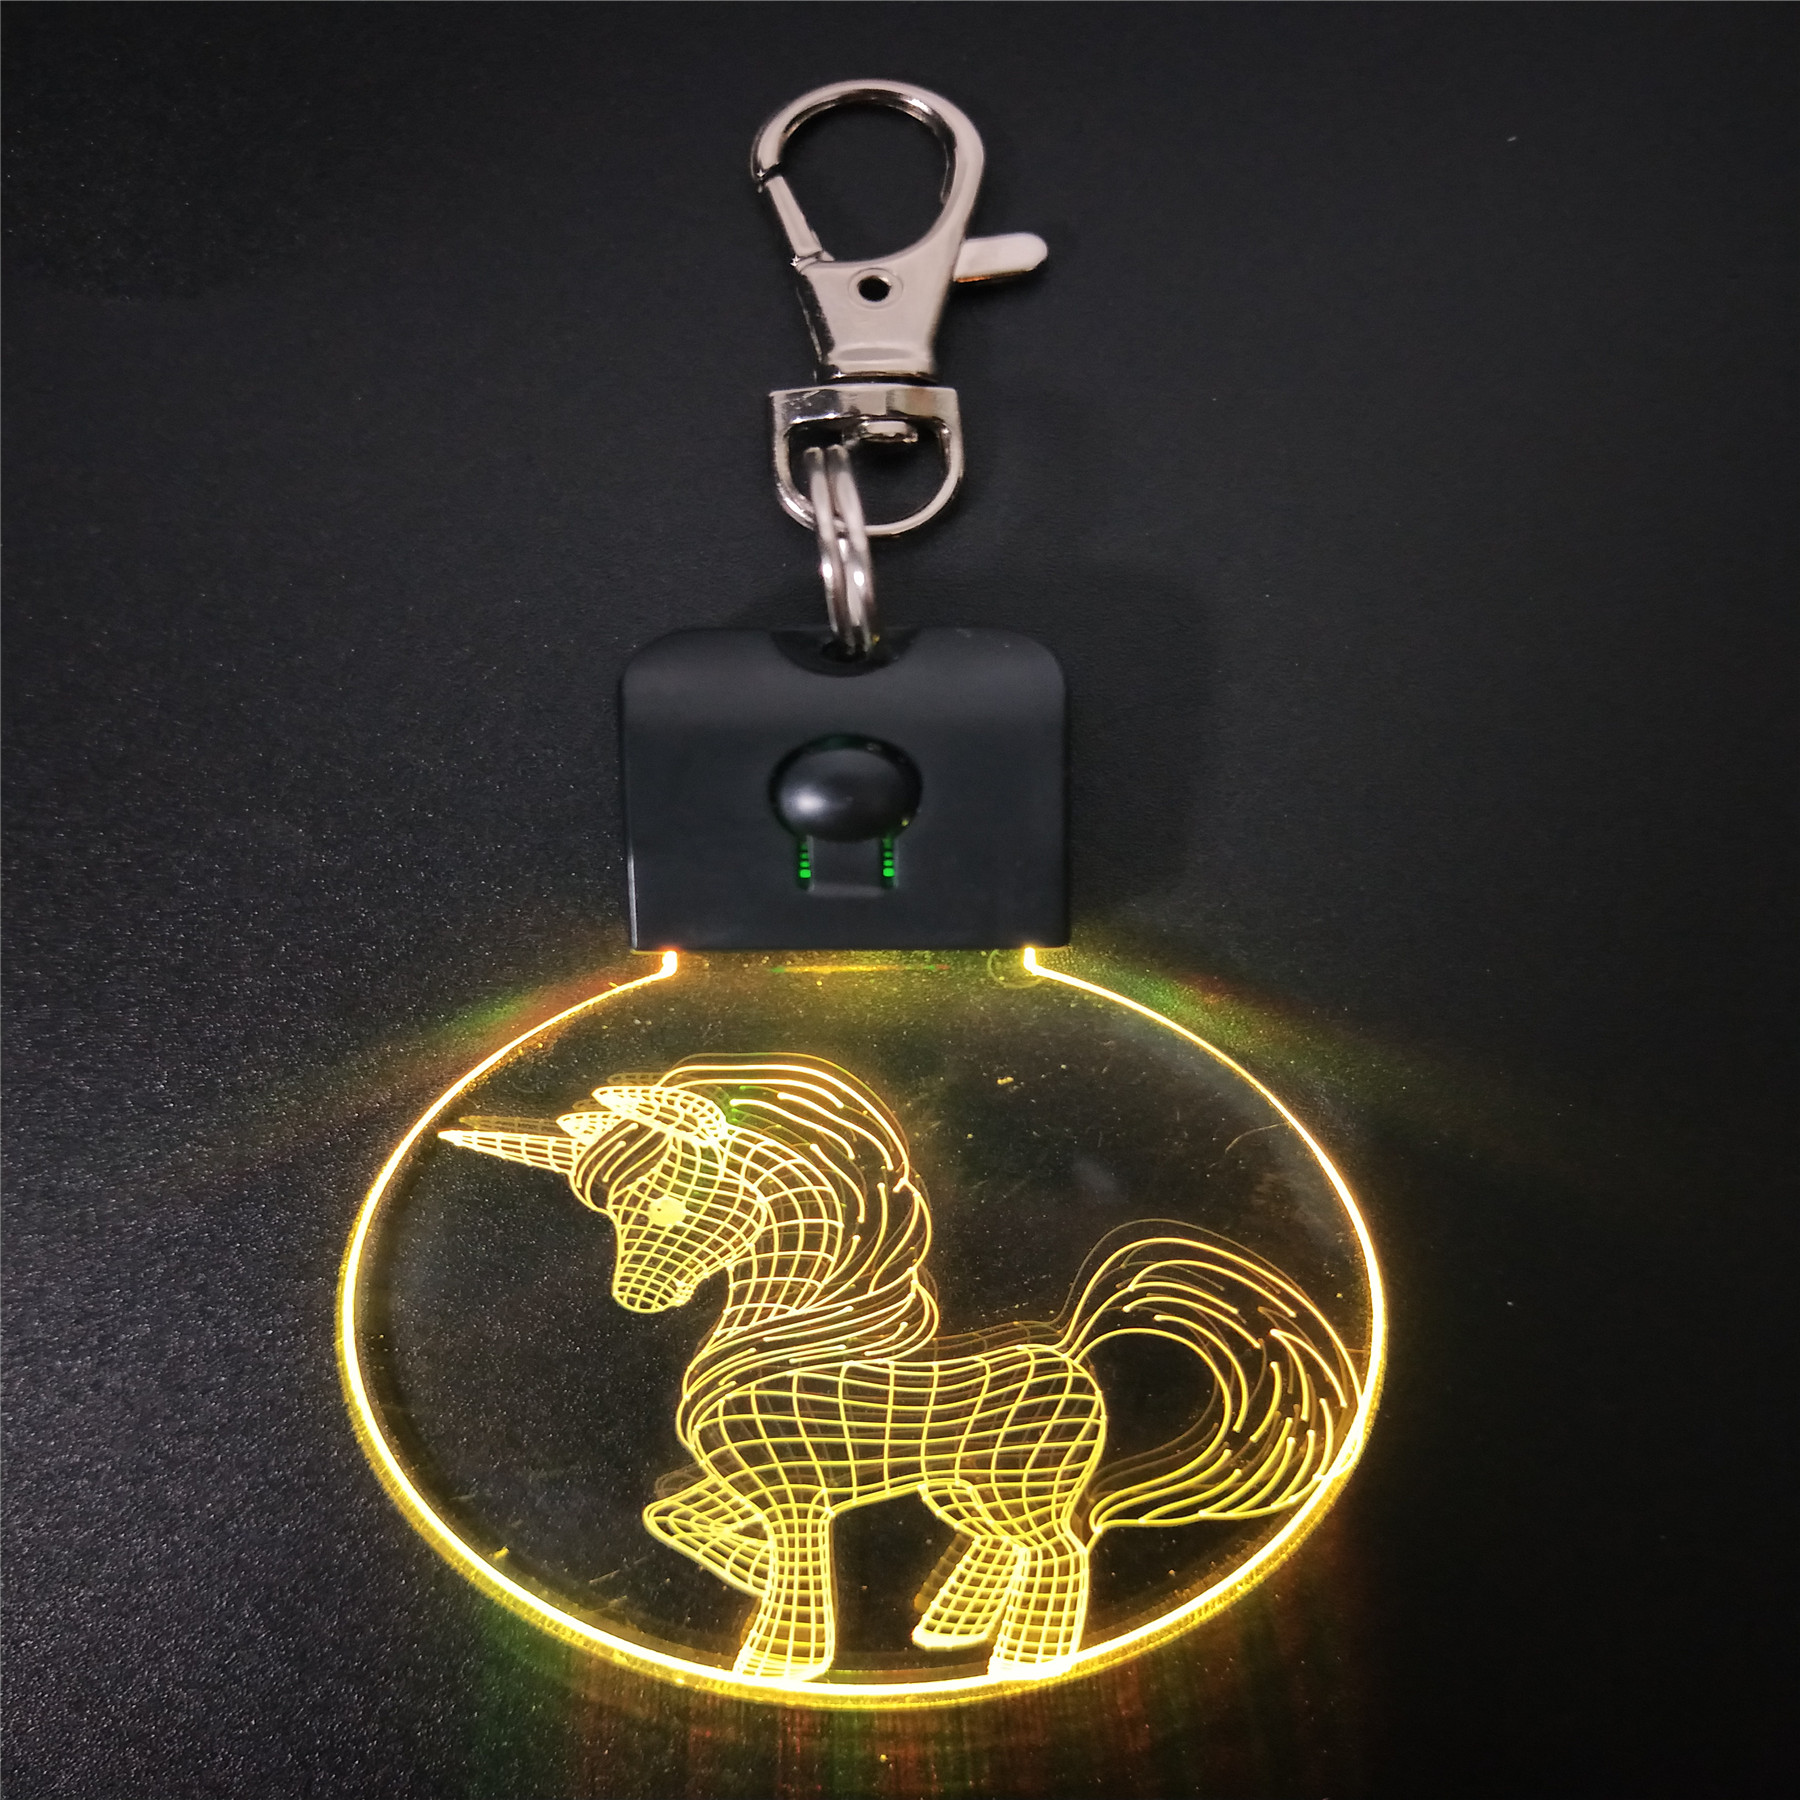 Unicorn Animal Keychain Shape 3D LED Arylic Night Light Magical Table Lamp Lighting Colors Decoration Gift With Li Battery